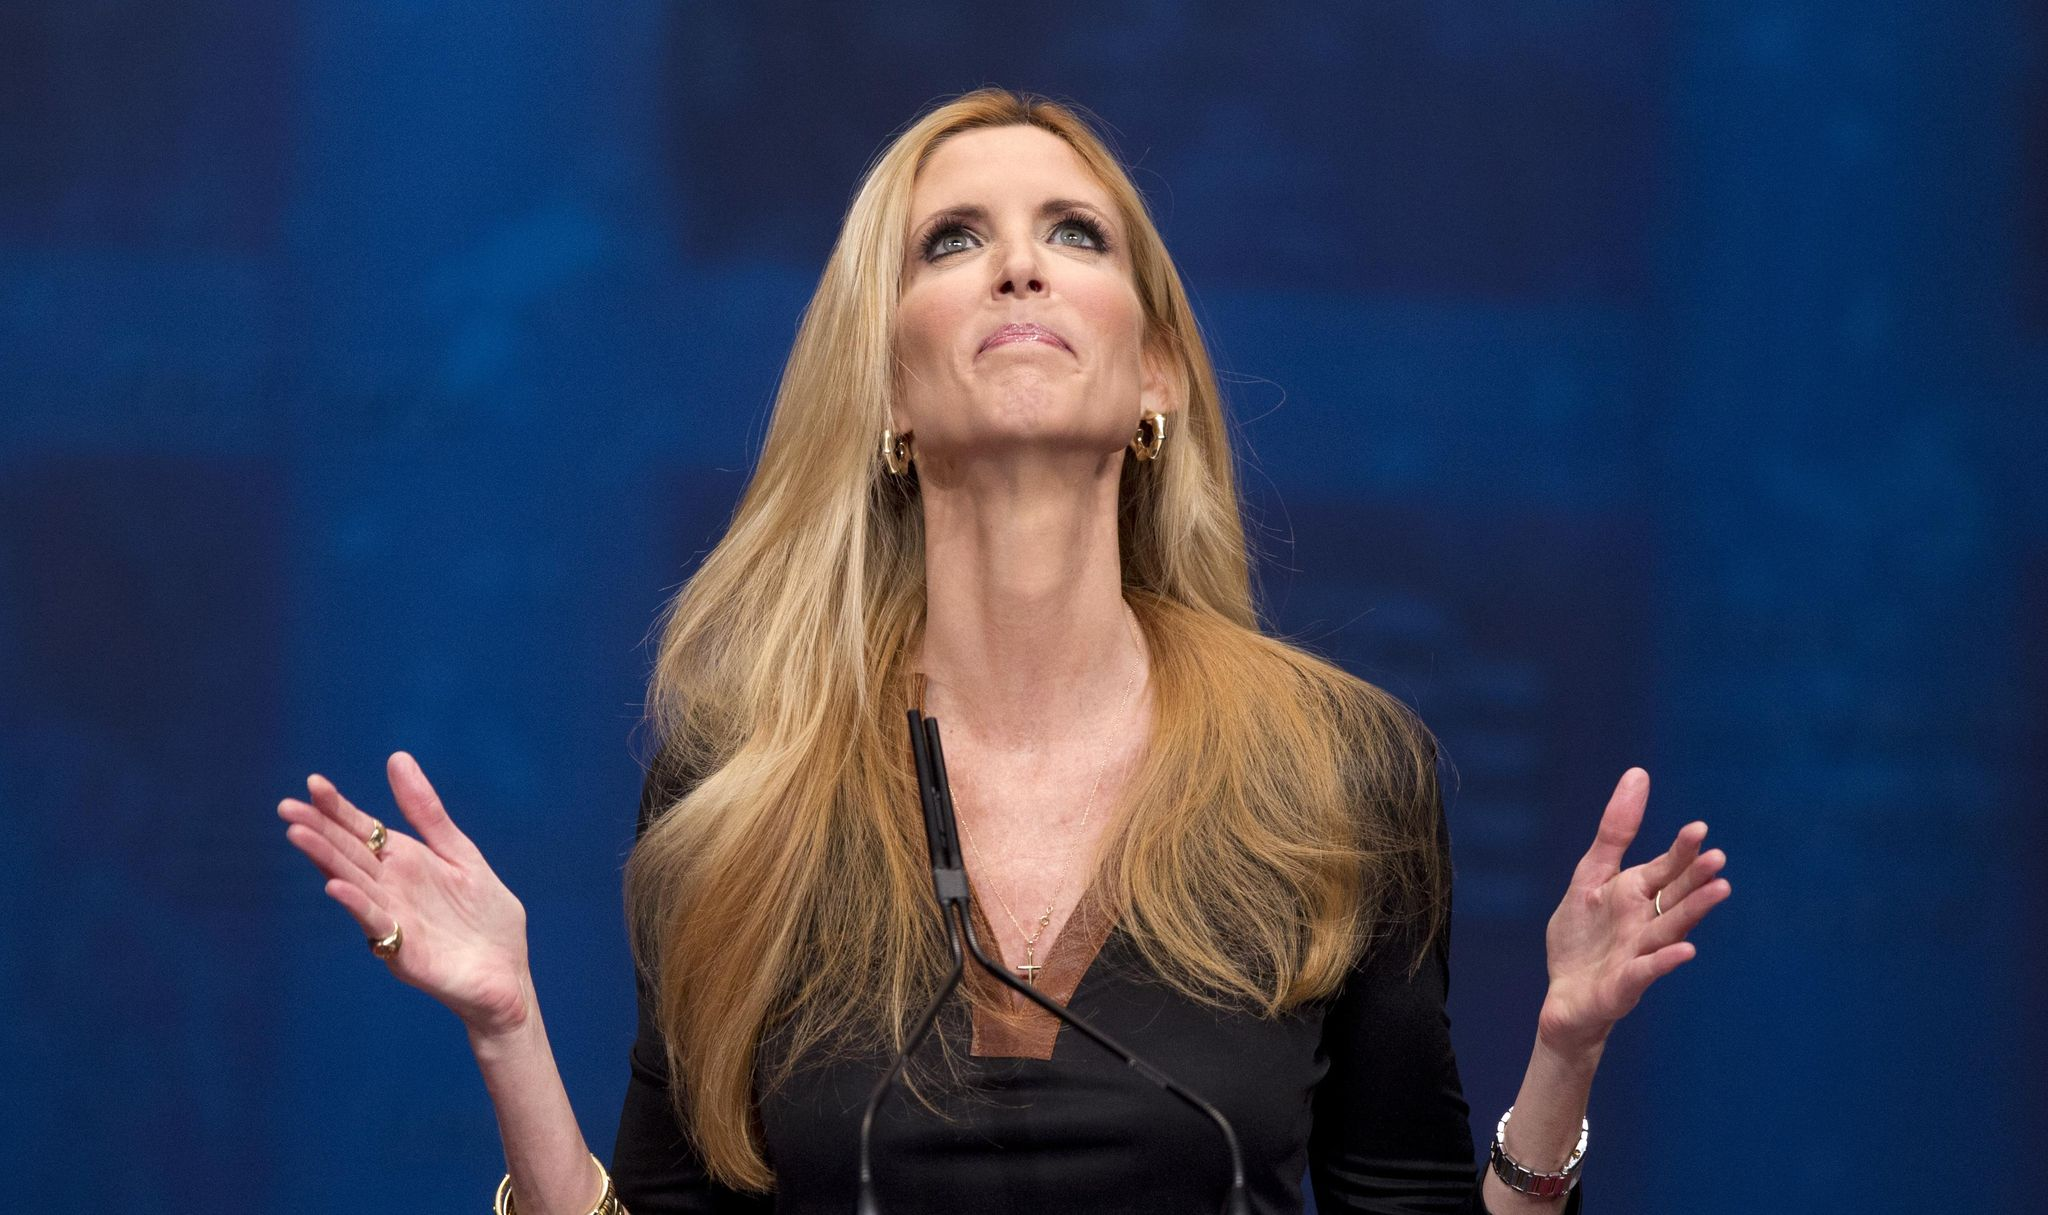 Ann Coulter, who says we voted for Trump but got Jeb, needs to ease off the 90-proof hyperbole juice